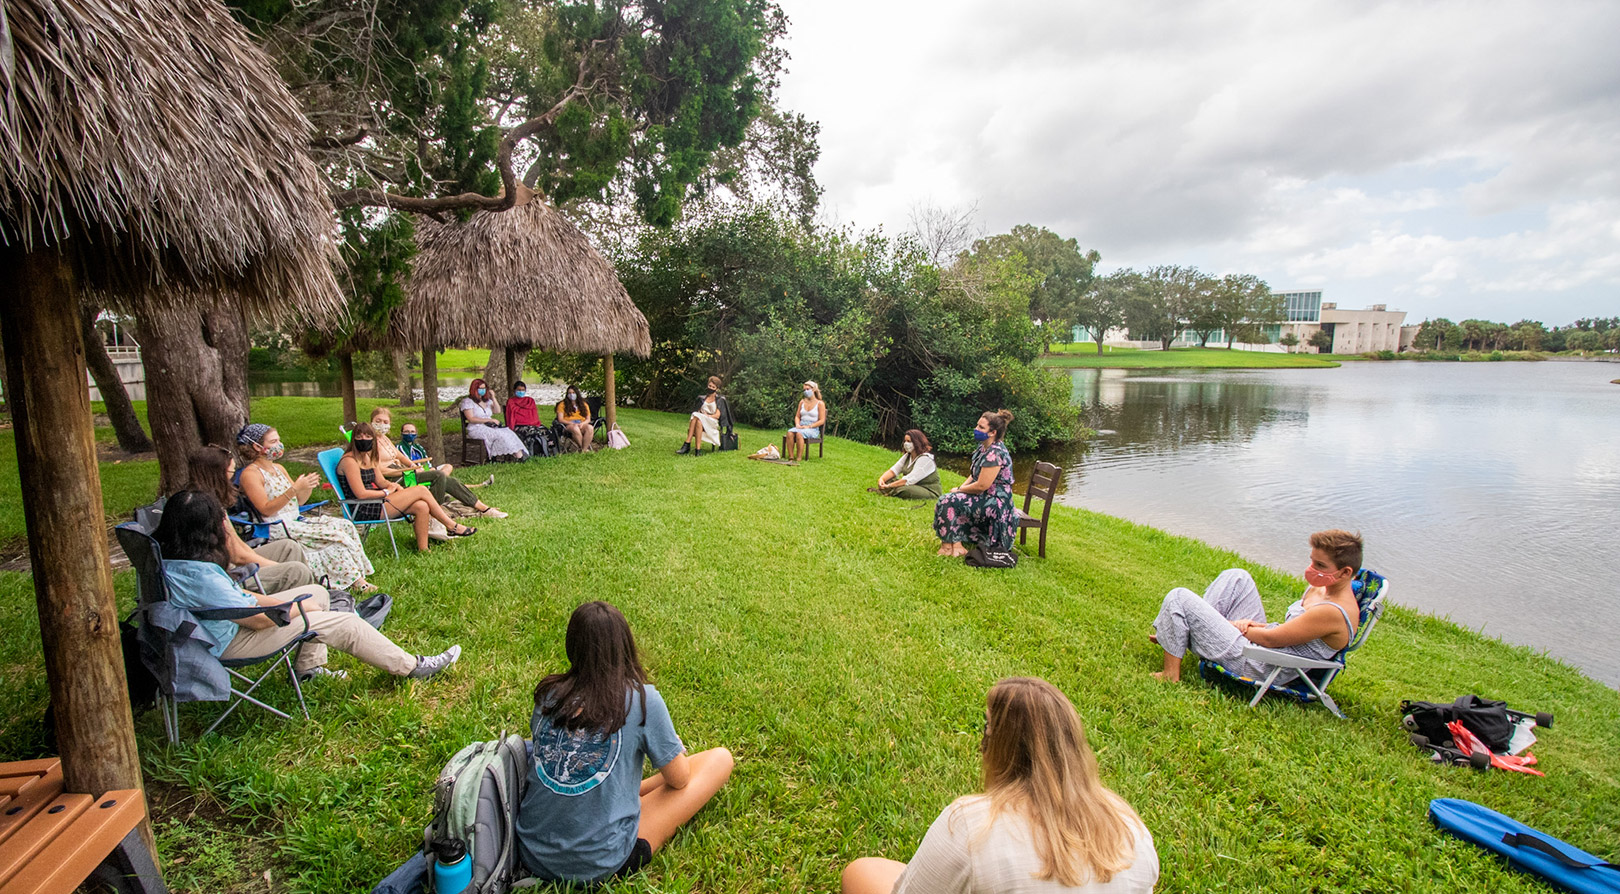 Outdoor class taught by chickees from Seminole Tribe of Florida